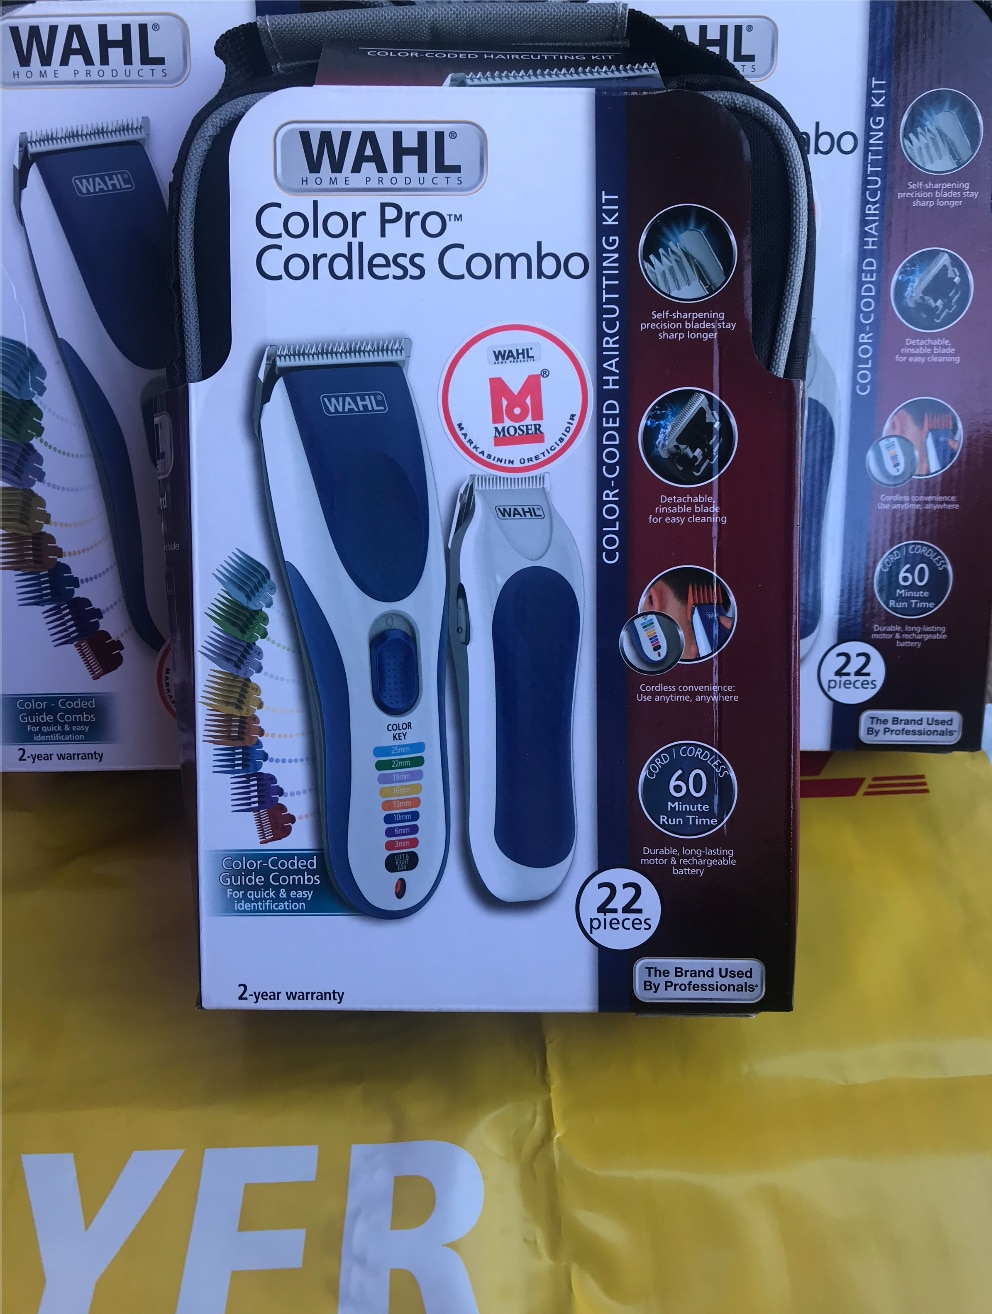 Wahl Color Pro Combo Cord/Cordless Hair Clippers, Trimmers, Grooming Kit, Color Coded Hair-Beard Cutting Machine Kit enlarge